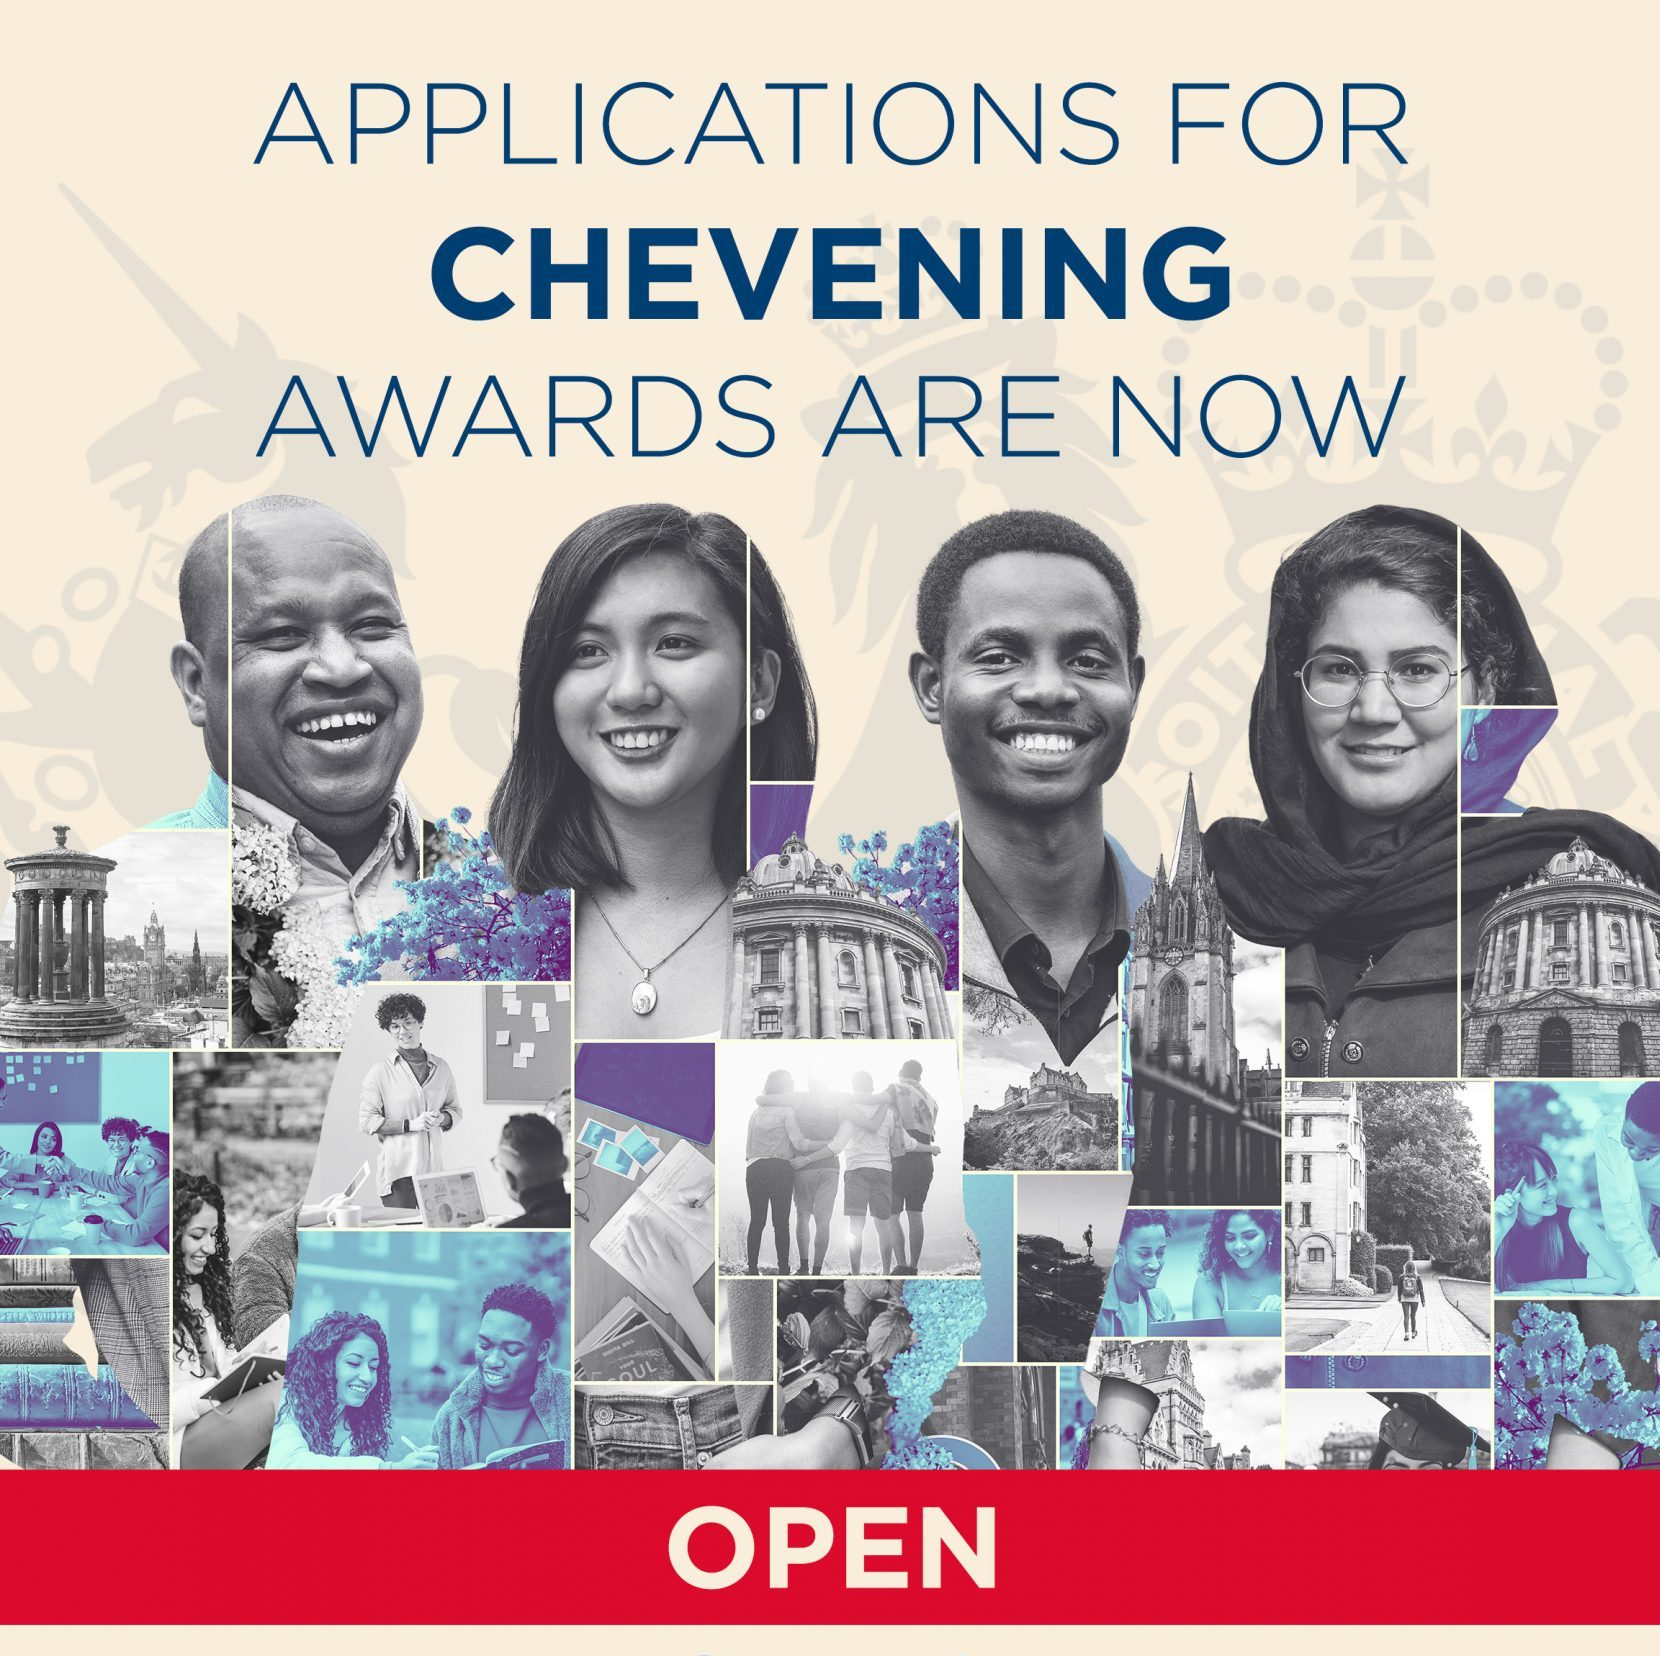 Applications open at 12:00 (midday) BST.